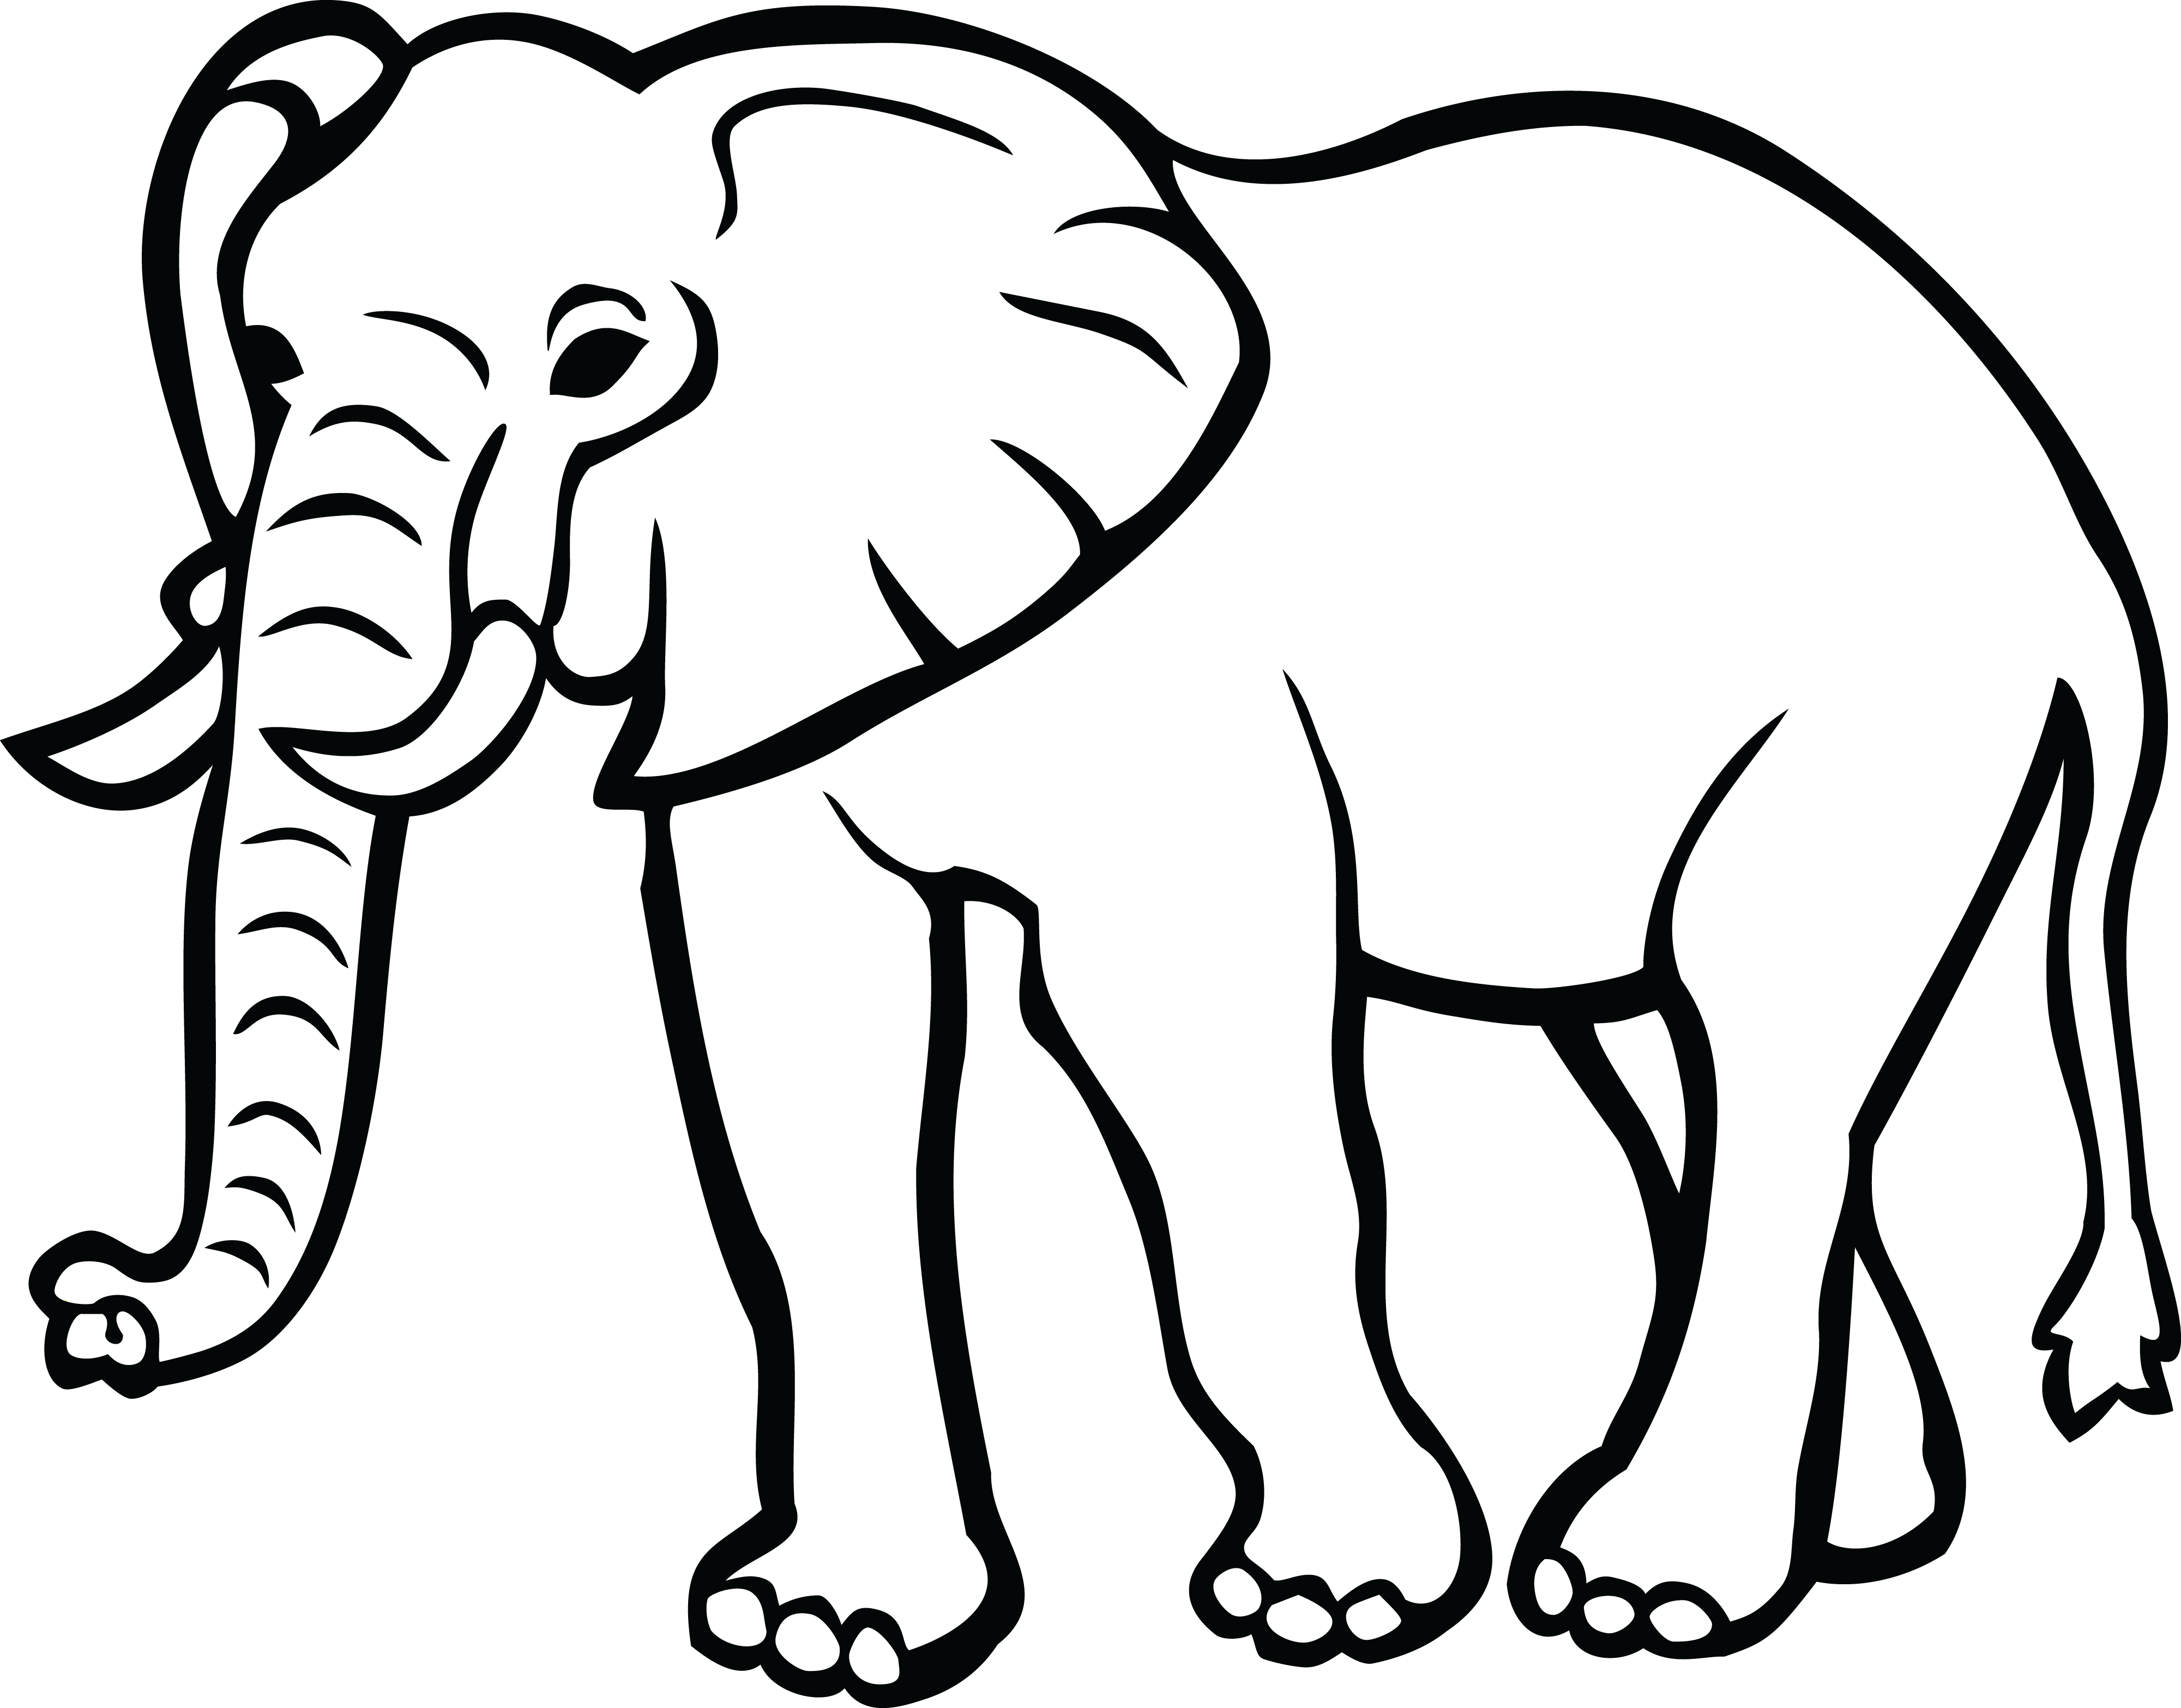 Elephant clip art black and white. Crafty design clipart clipartxtras